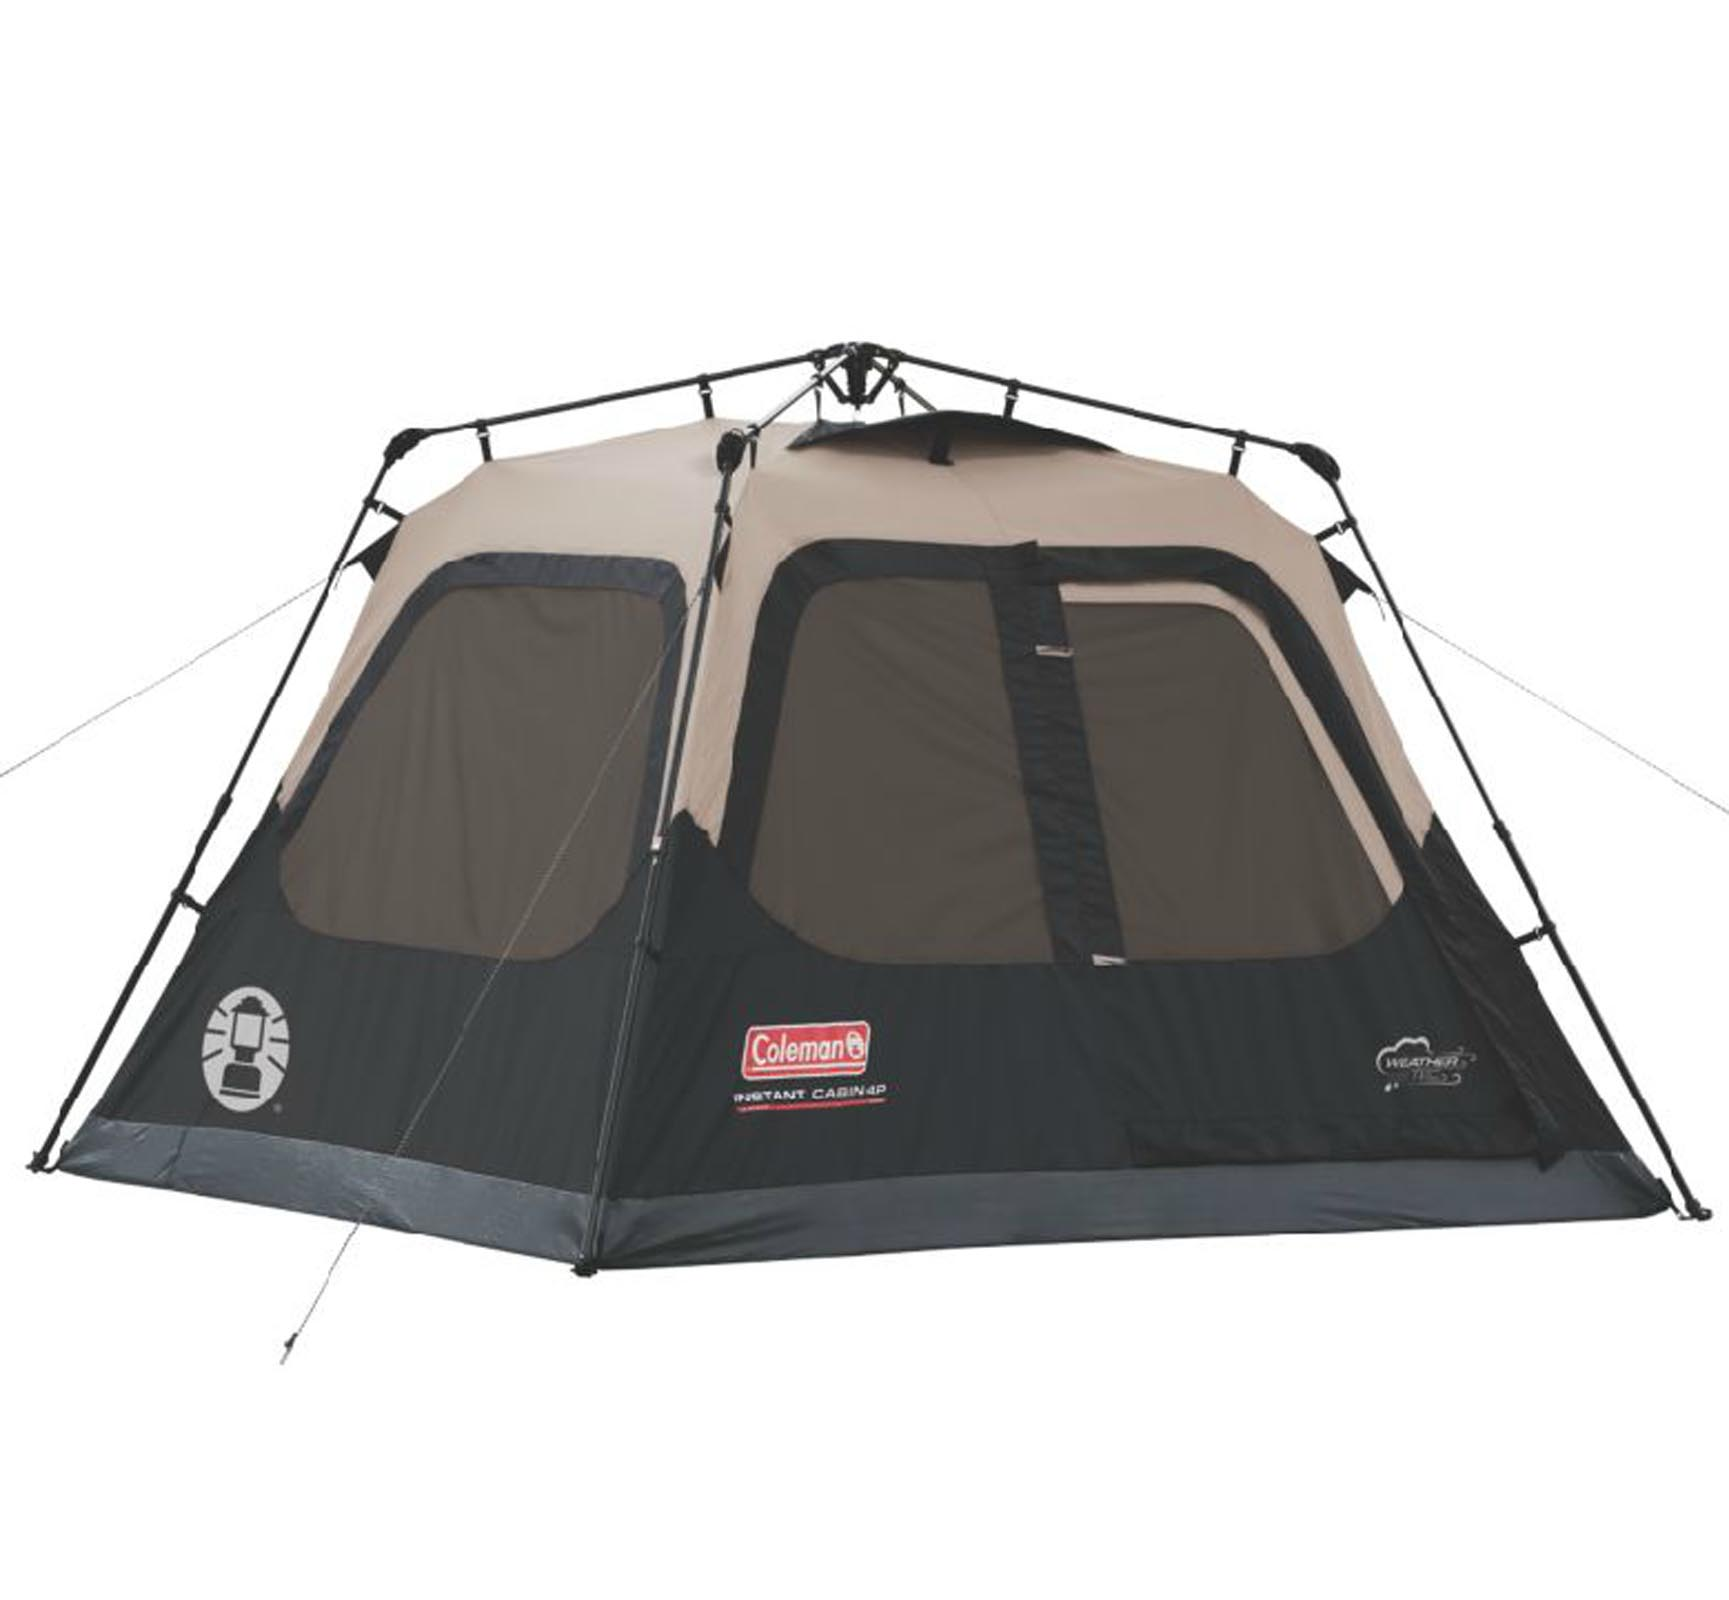 Coleman Instant Set-Up 4-Person Tent ...  sc 1 st  Walmart & Coleman Instant Set-Up 4-Person Tent 8u0027 x 7u0027 - Walmart.com